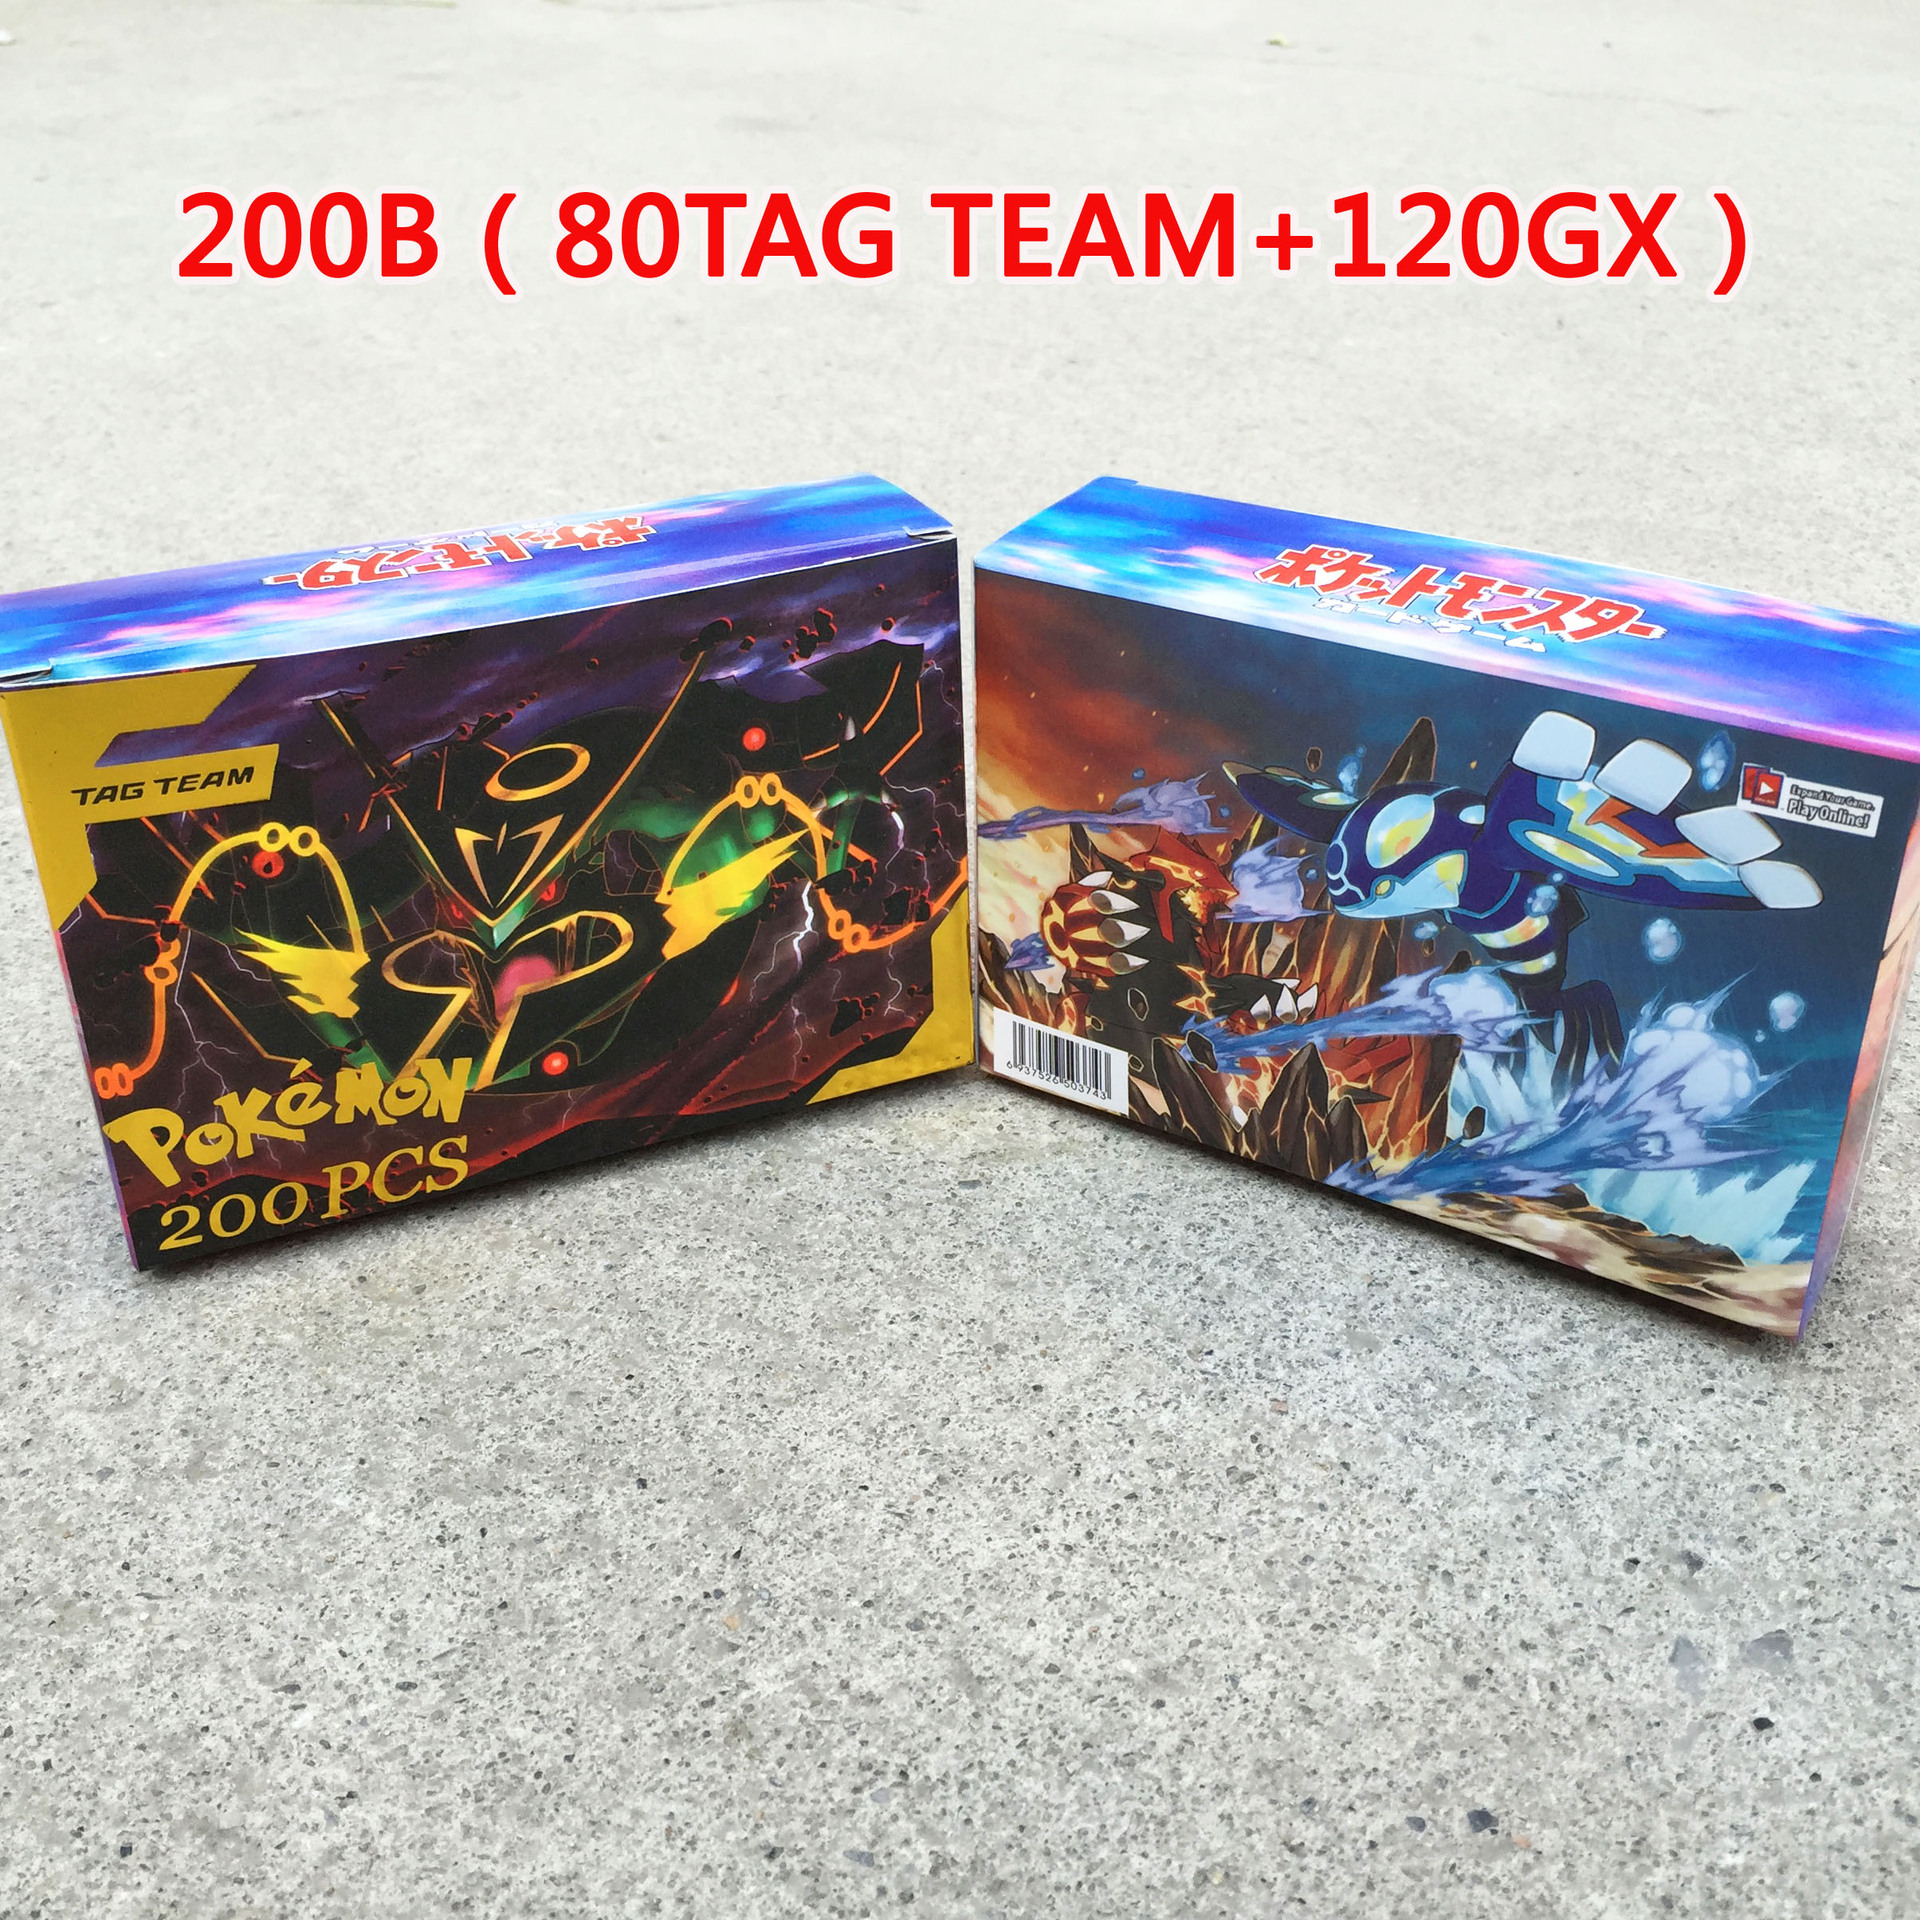 TAKARA TOMY 200pcs Pokemon Tag Team Gx Battle Toys Hobbies Collectibles Game Collection Anime Cards For Children Christmas Gift